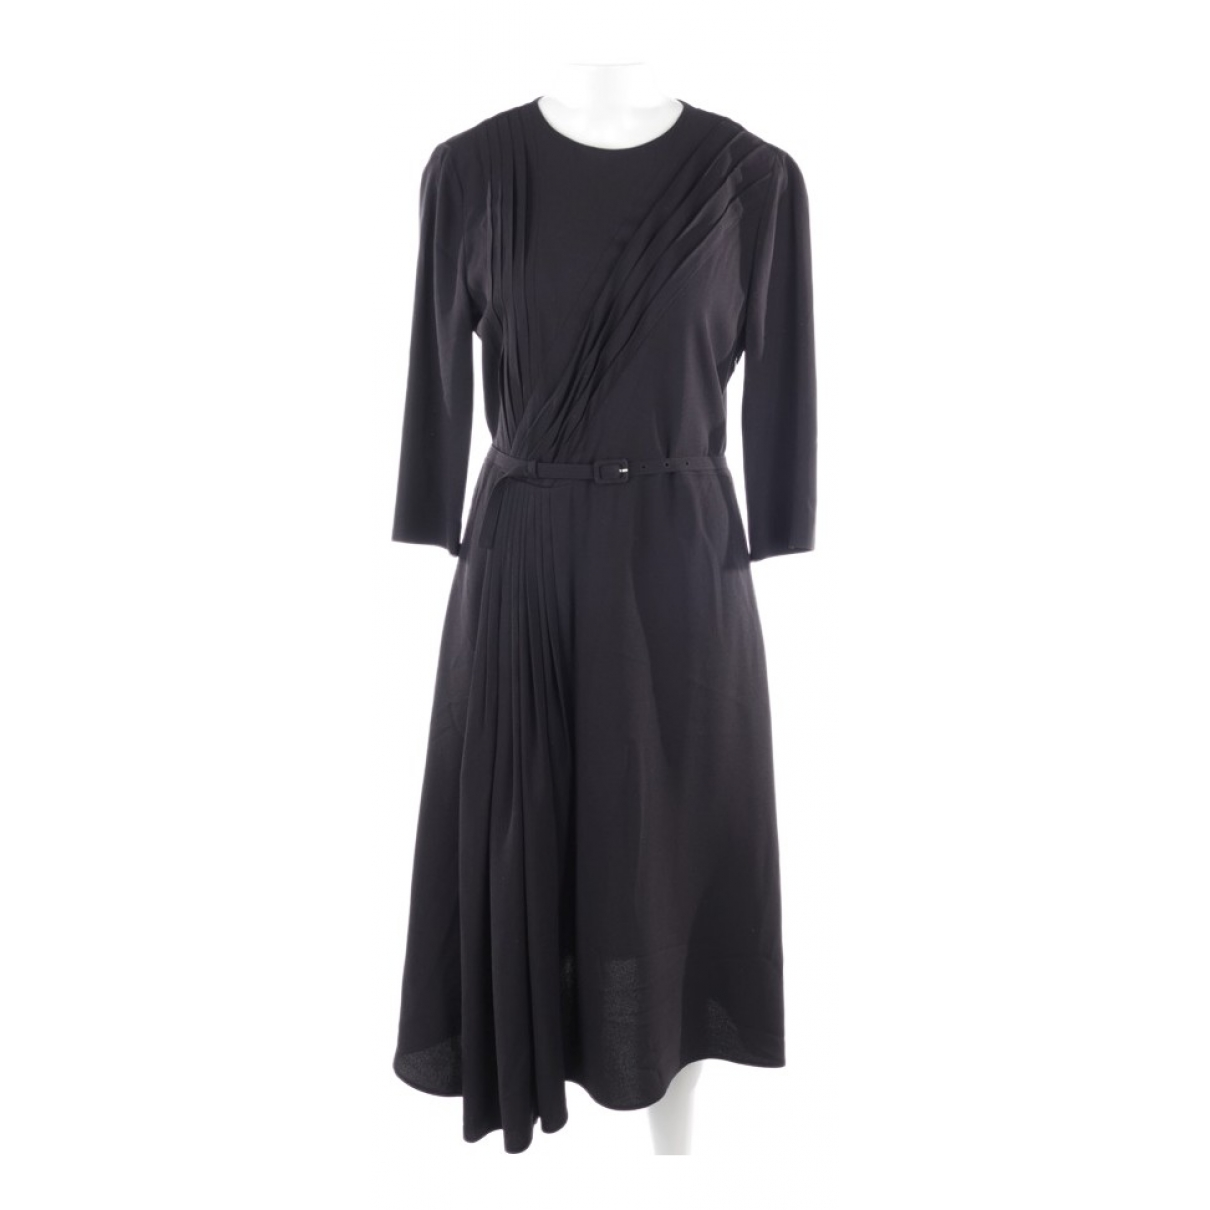 Prada \N Black dress for Women 34 FR